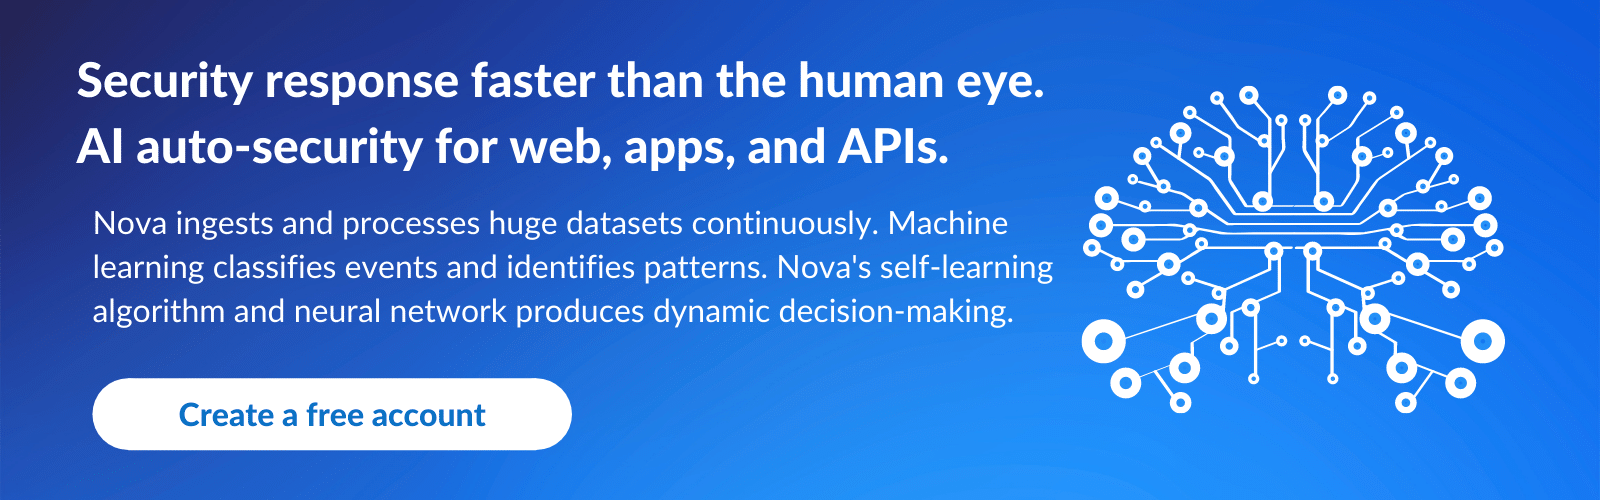 Snapt CTA: AI security automation for web, apps, and APIs.